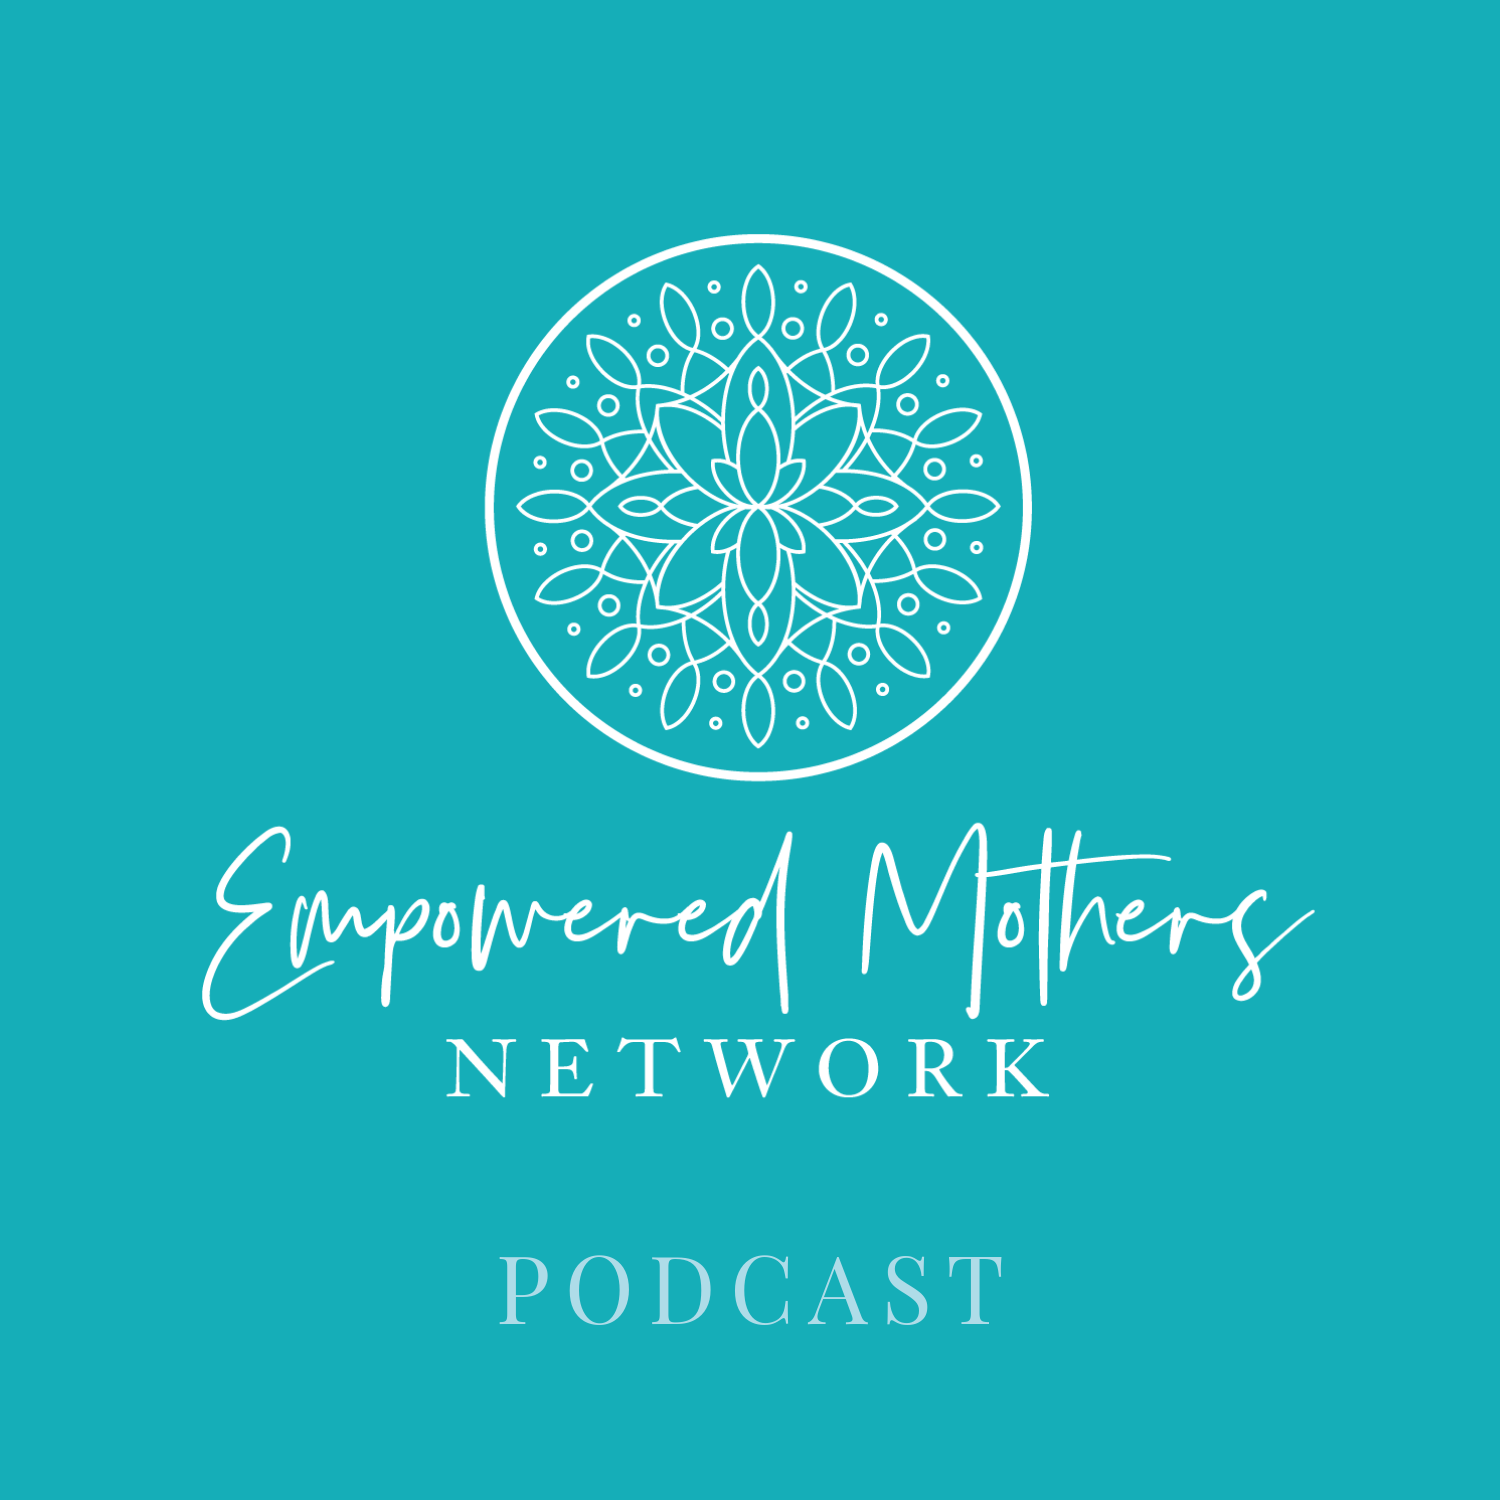 Empowered Mothers Network Podcast show art